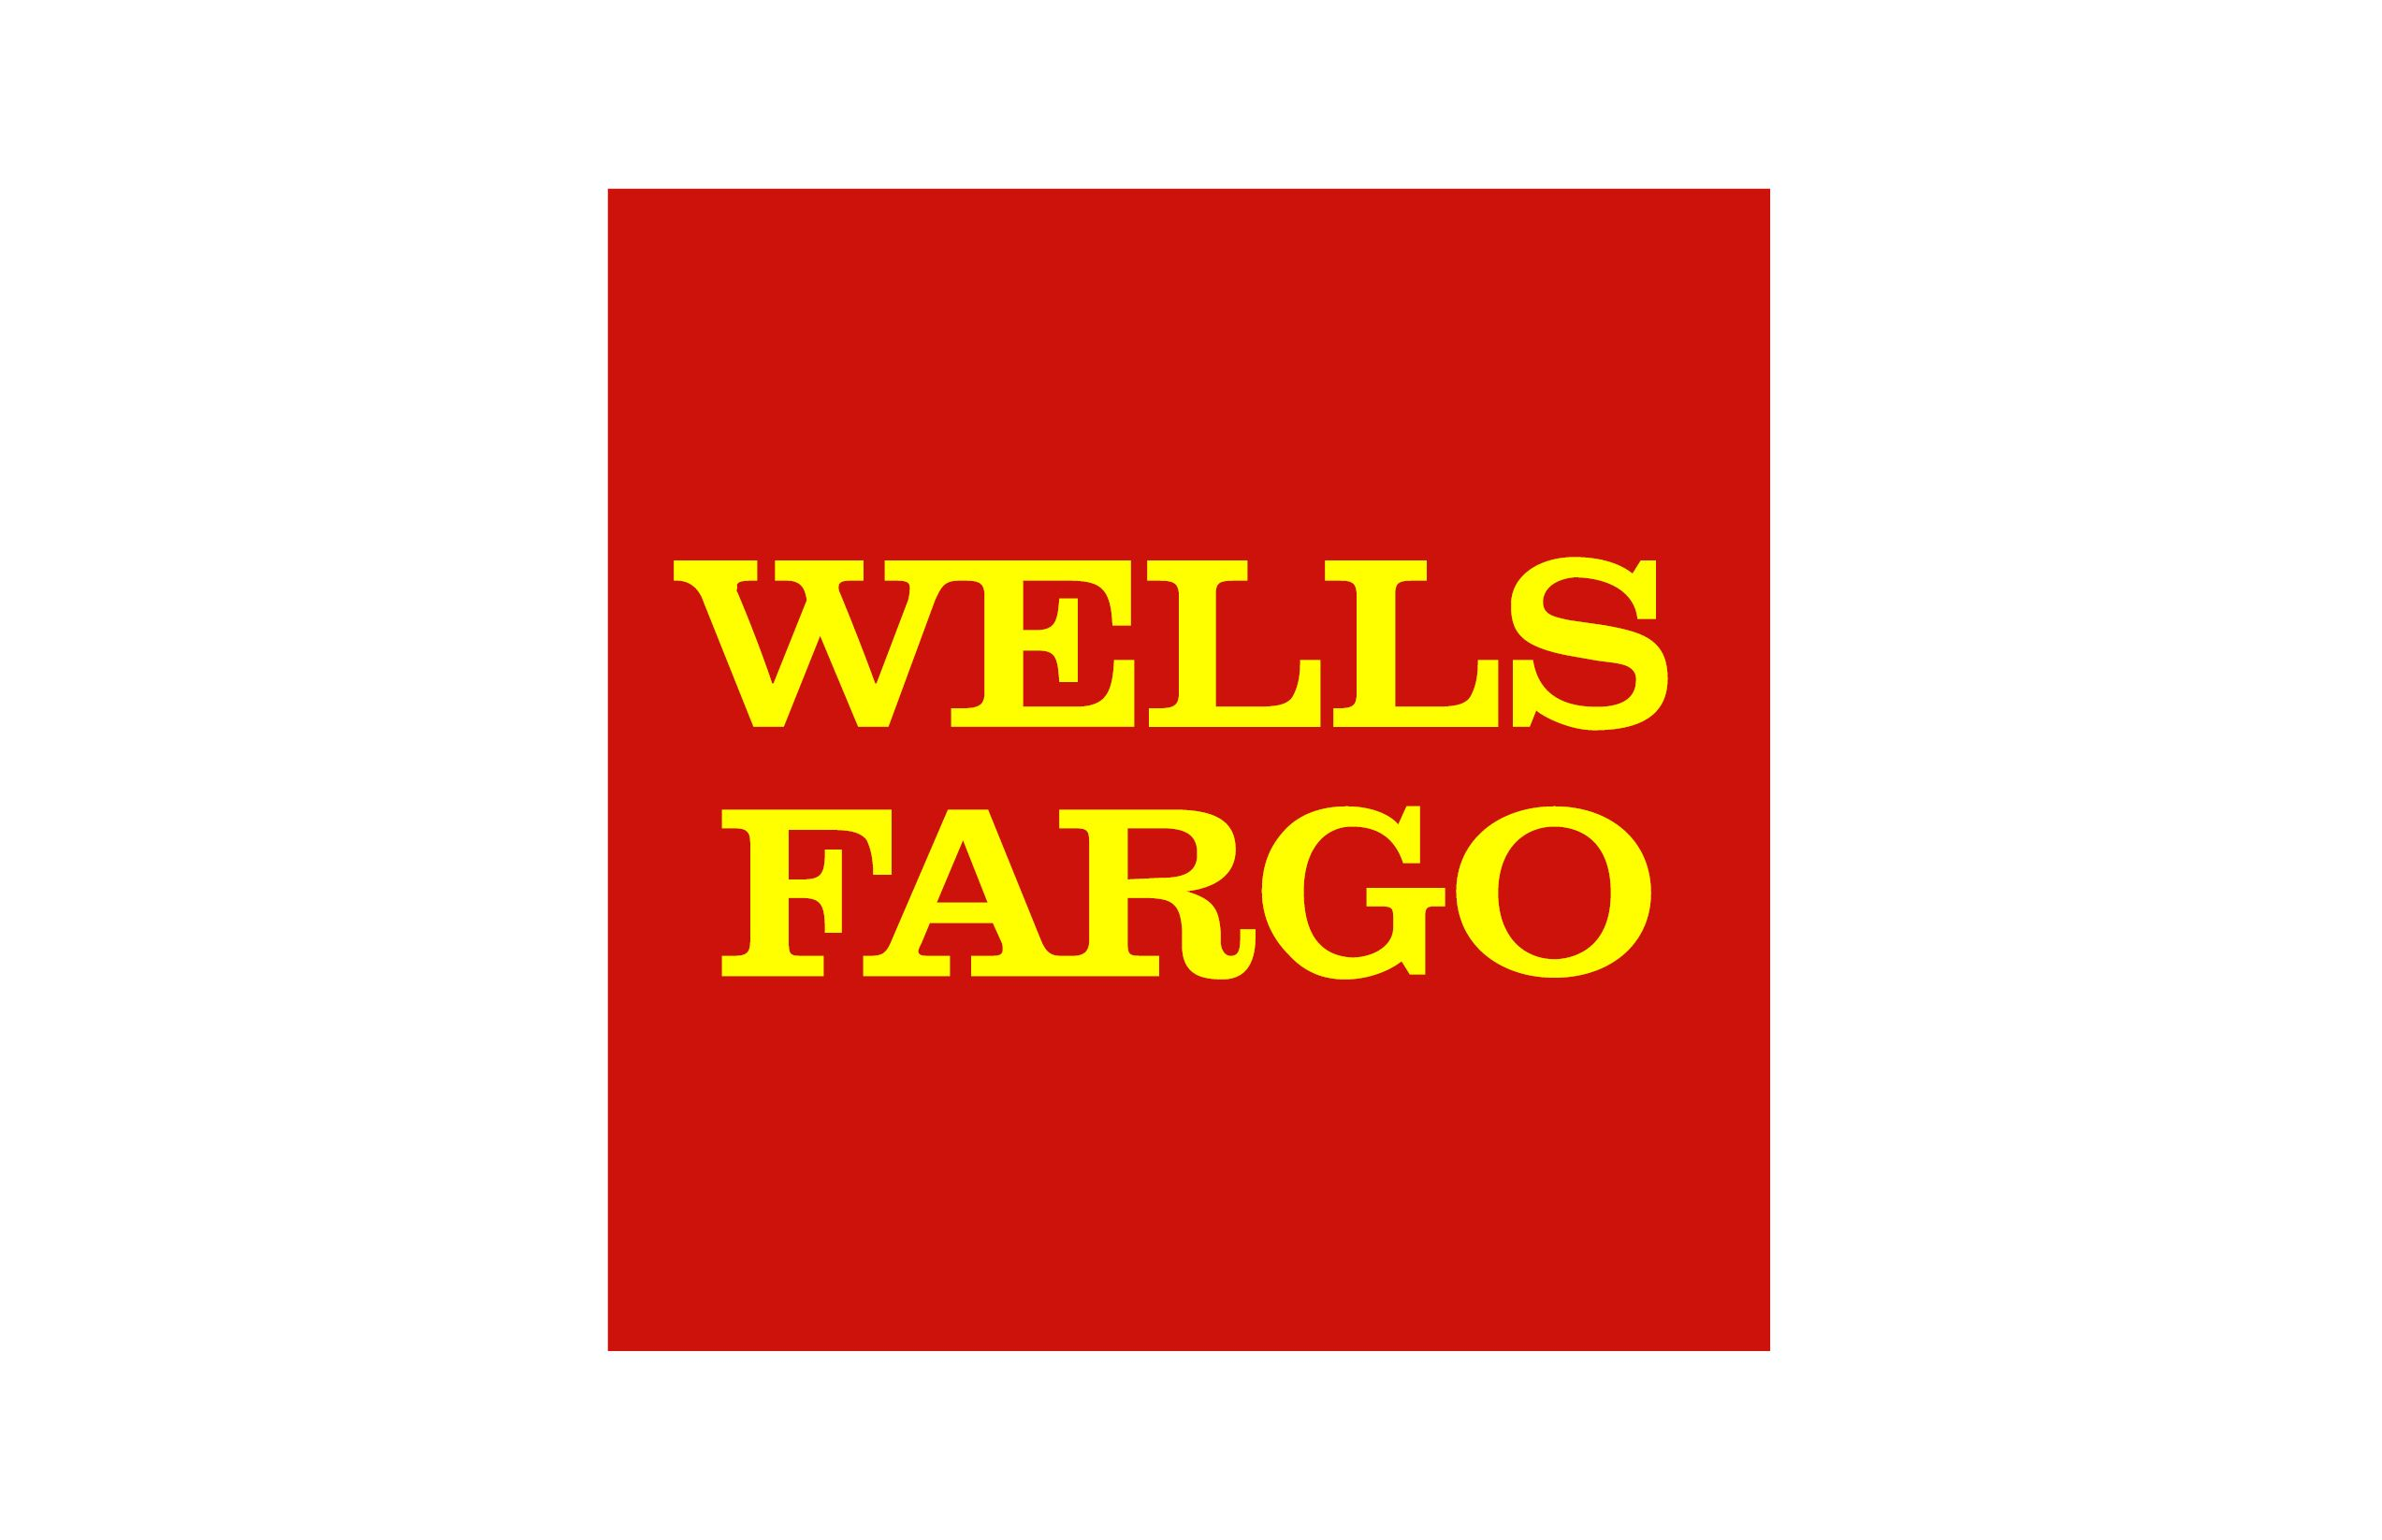 Vietfilmfest Is Delighted To Have Wells Fargo As Title Sponsor Of Viff 2013 And They Are Our First Title Sp Wells Fargo Logo Wells Fargo Mortgage Wells Fargo